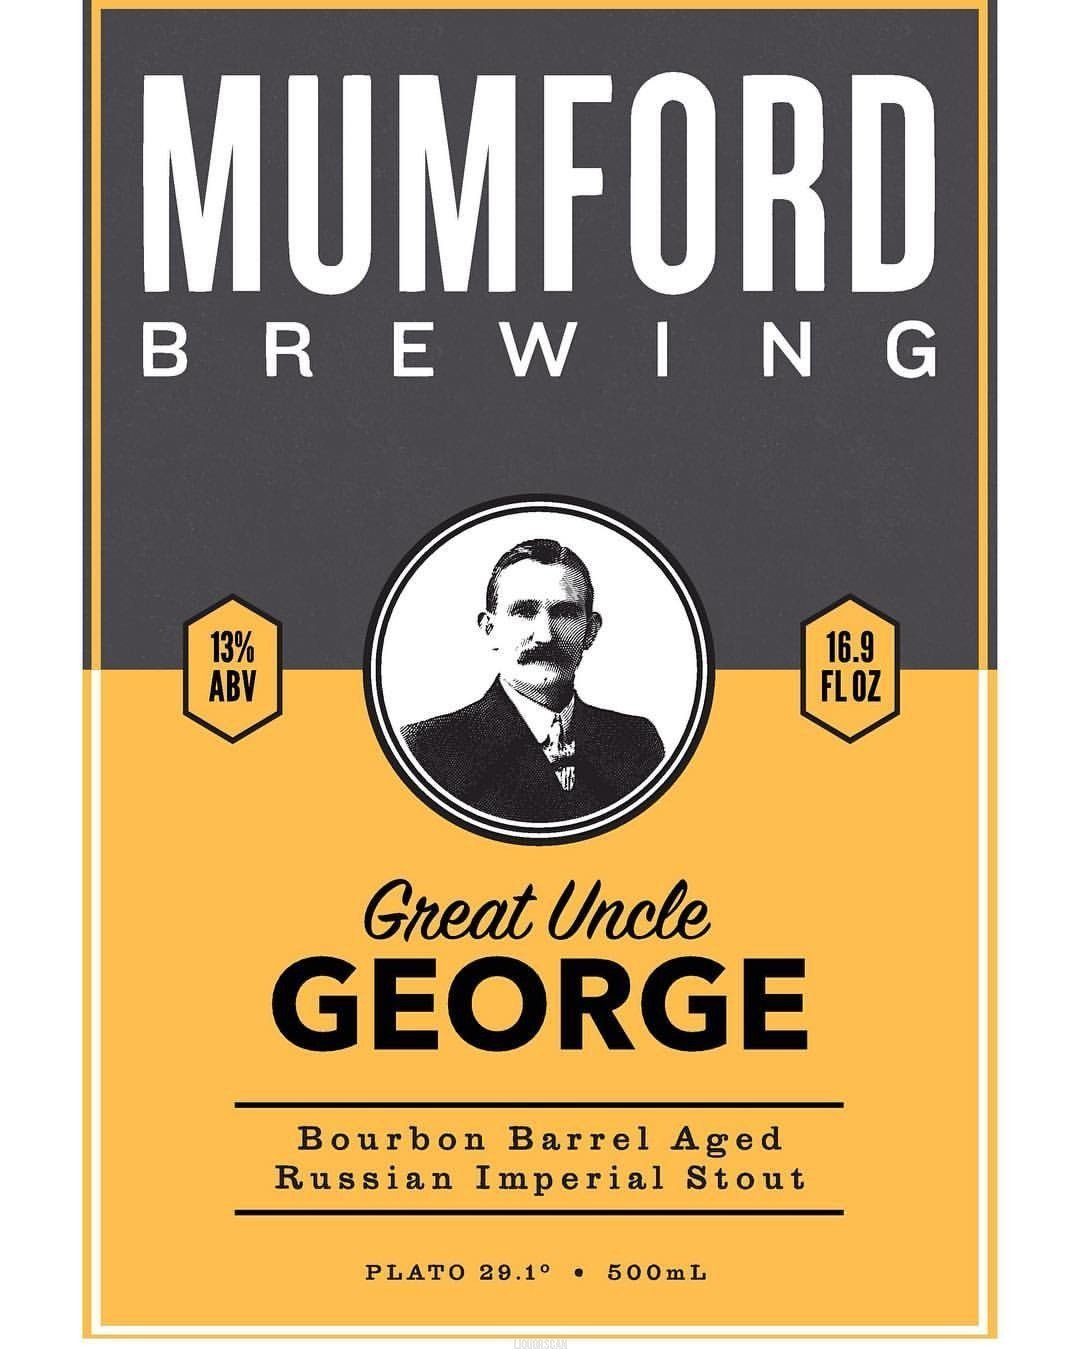 Mumford Great Uncle George Bourbon Barrel Aged Russian Imperial Stout